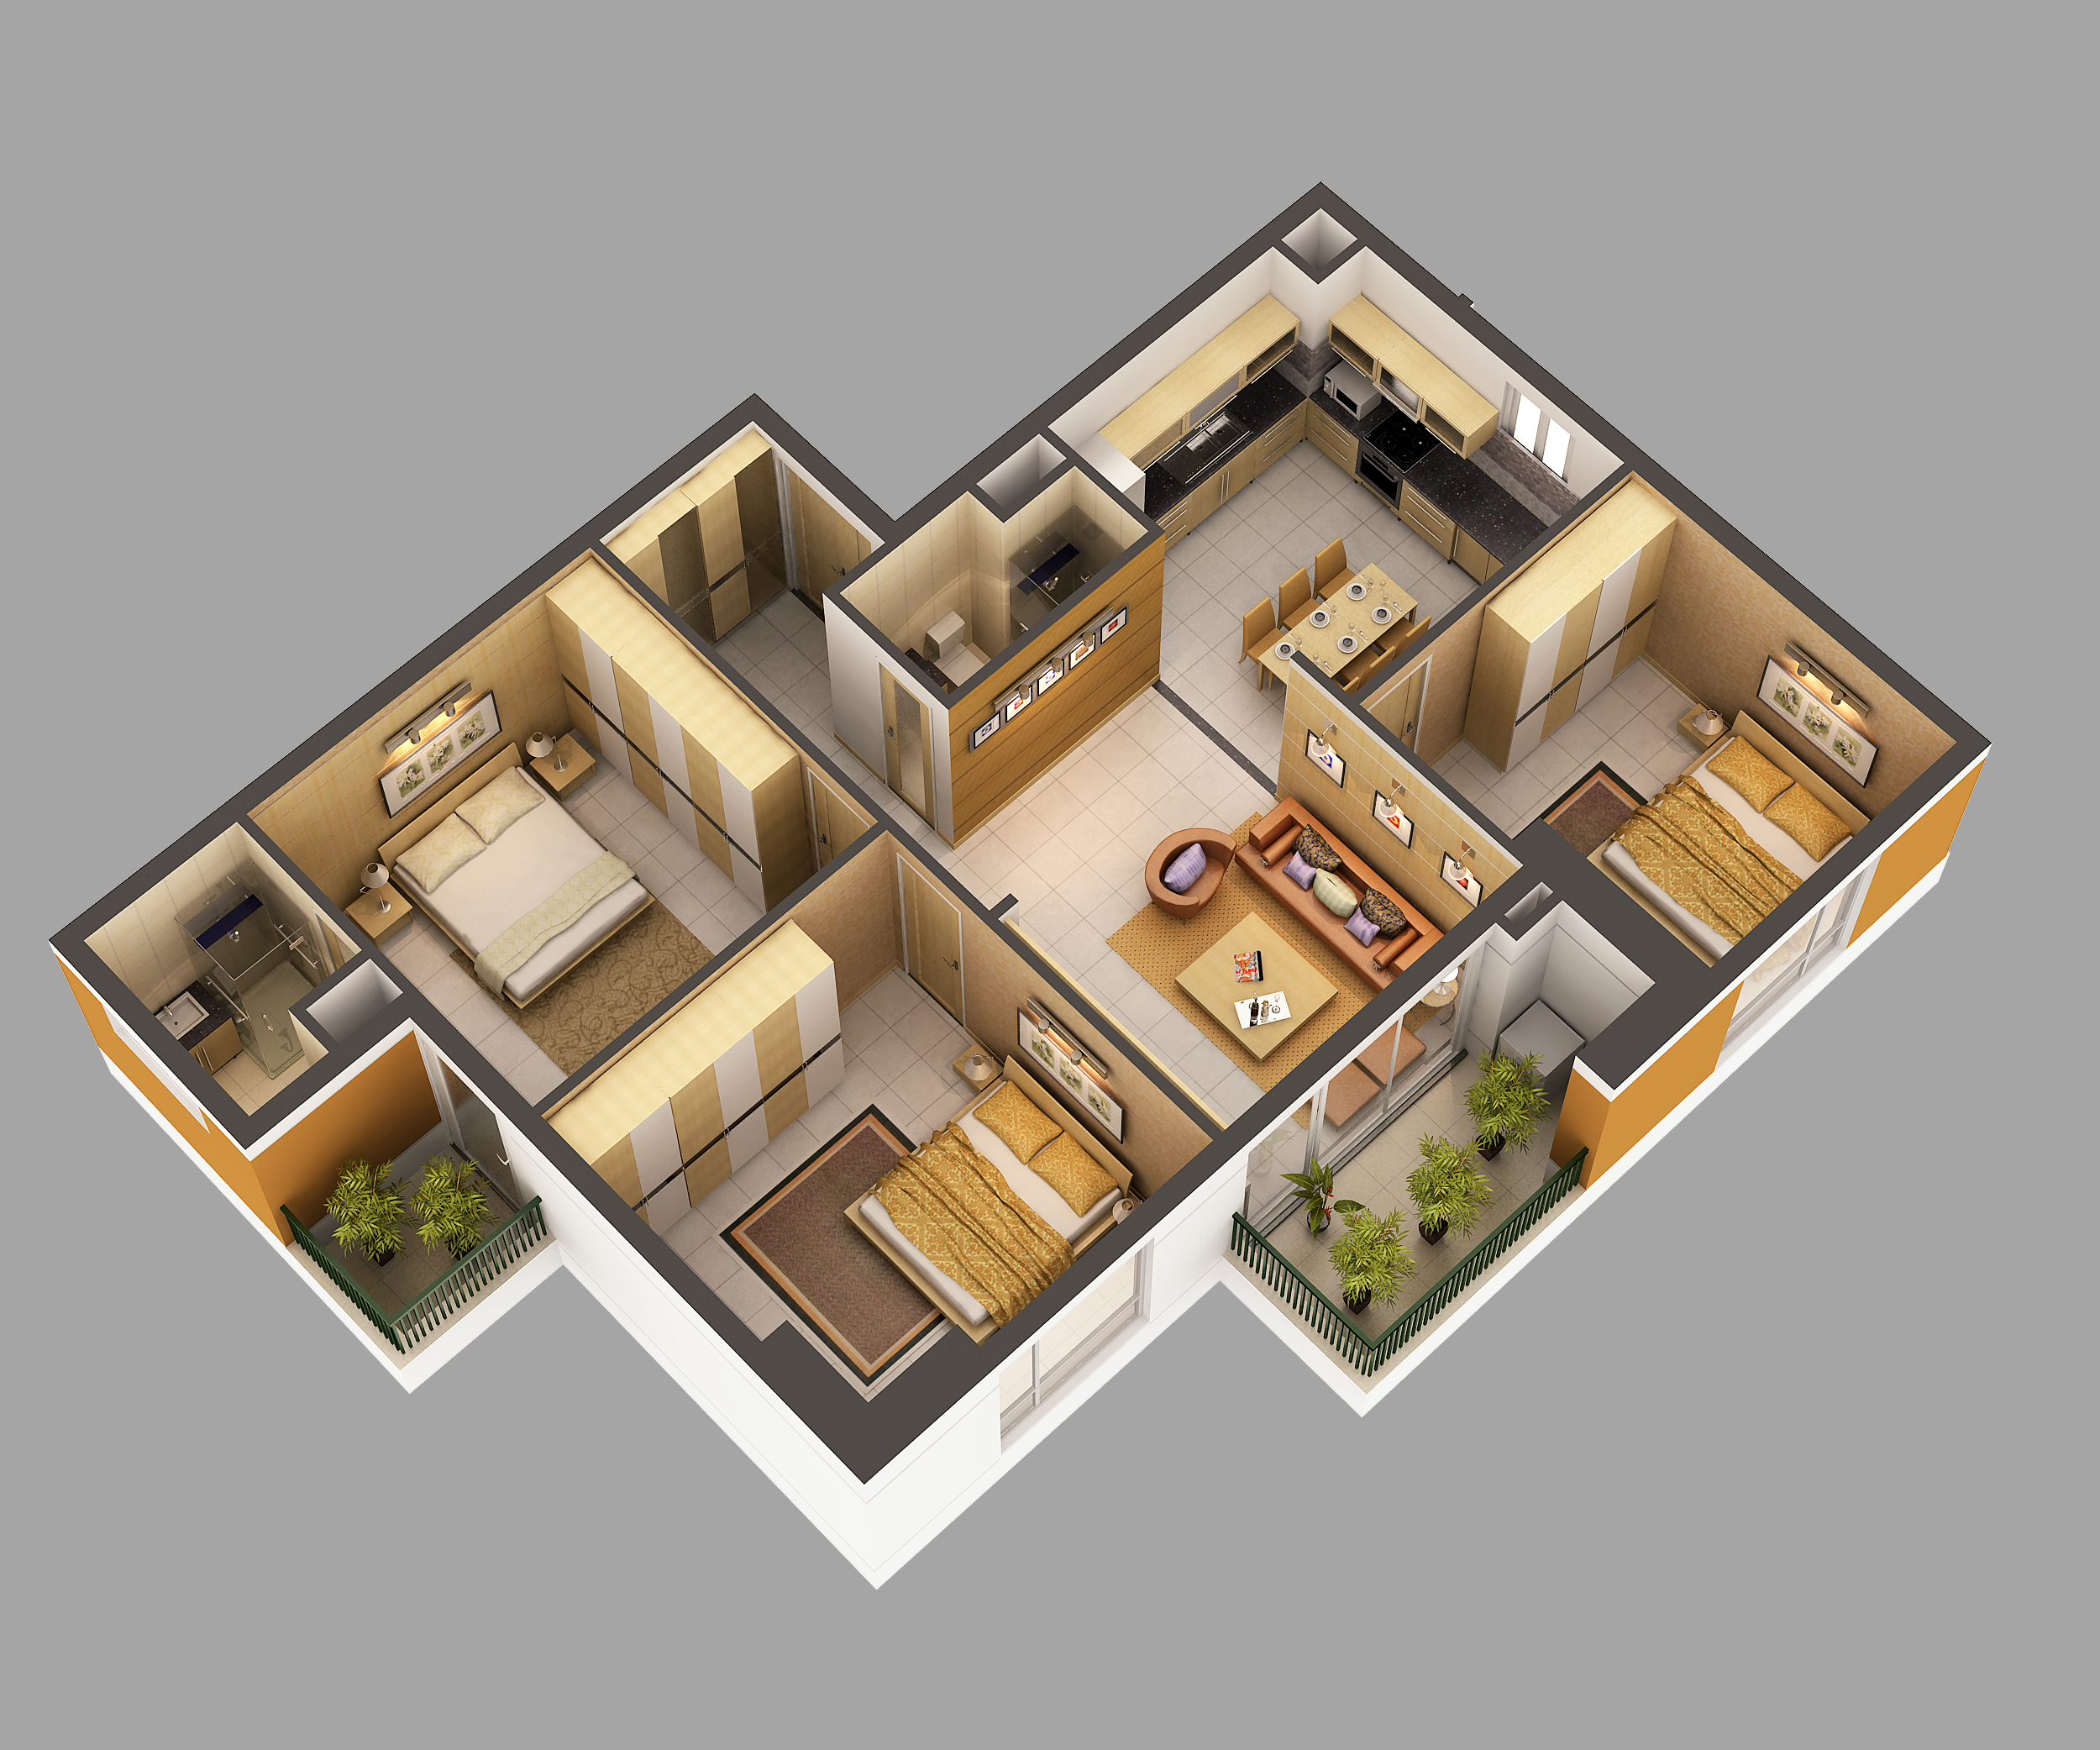 3d model home interior fully furnished 3d model max Building model homes